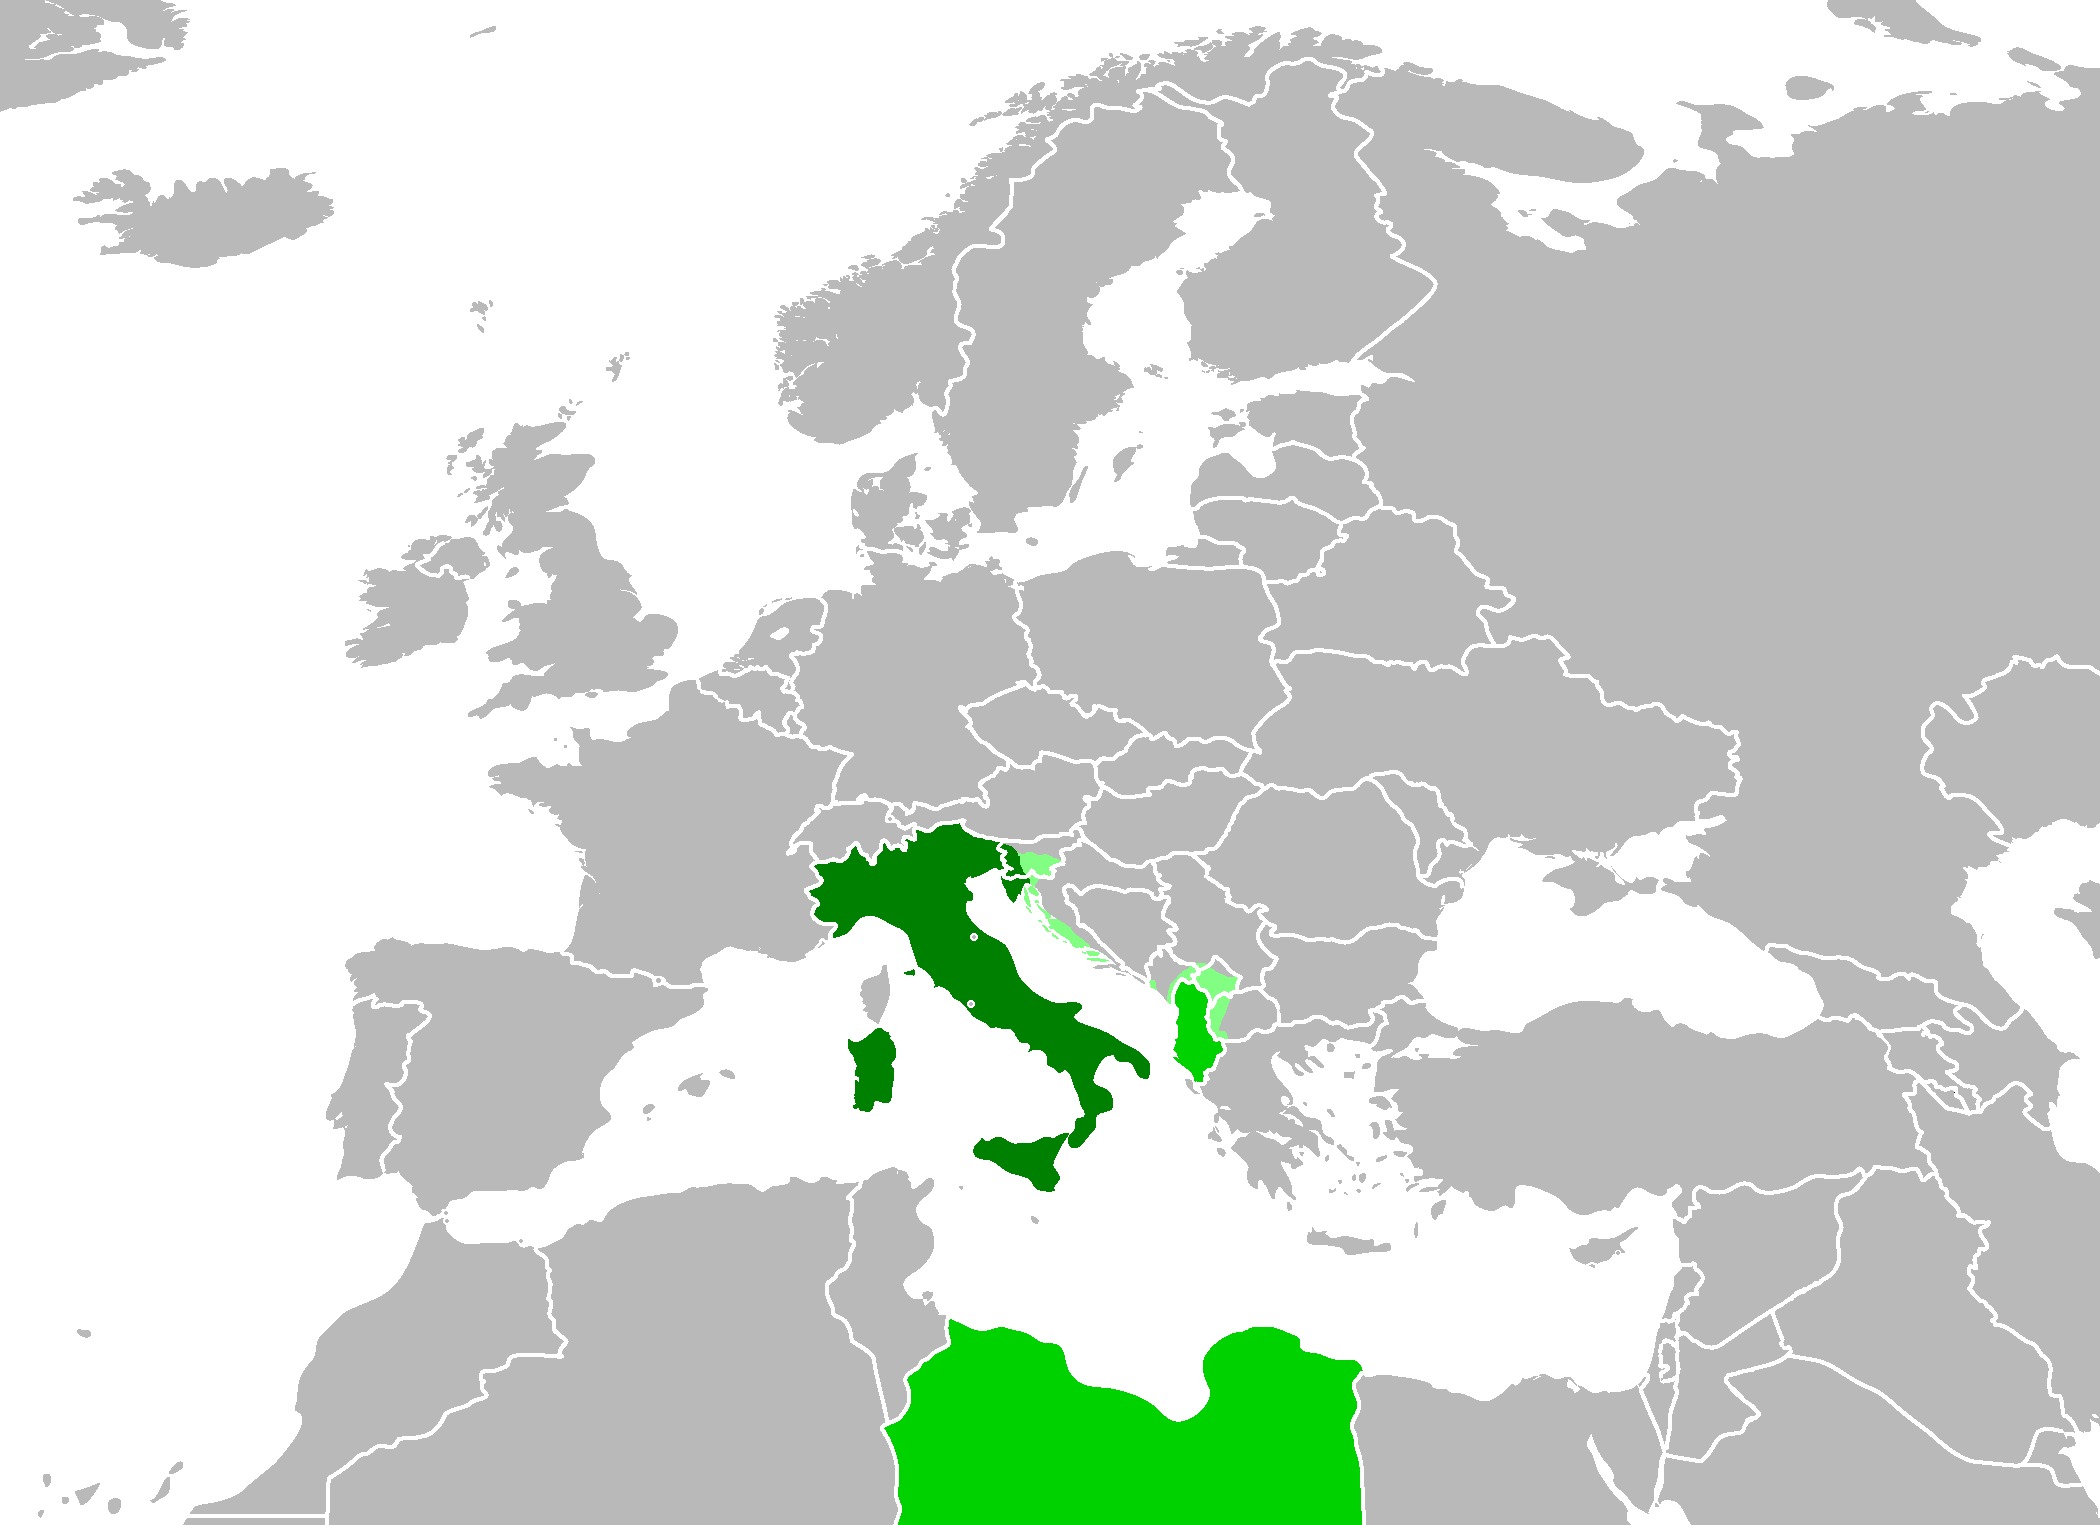 Fascist italy the empire survives alternative history fandom 250pxcenteraltlocation of italy dark green represents mainland italy green represents albania and libya and light green represents the land italy gumiabroncs Image collections